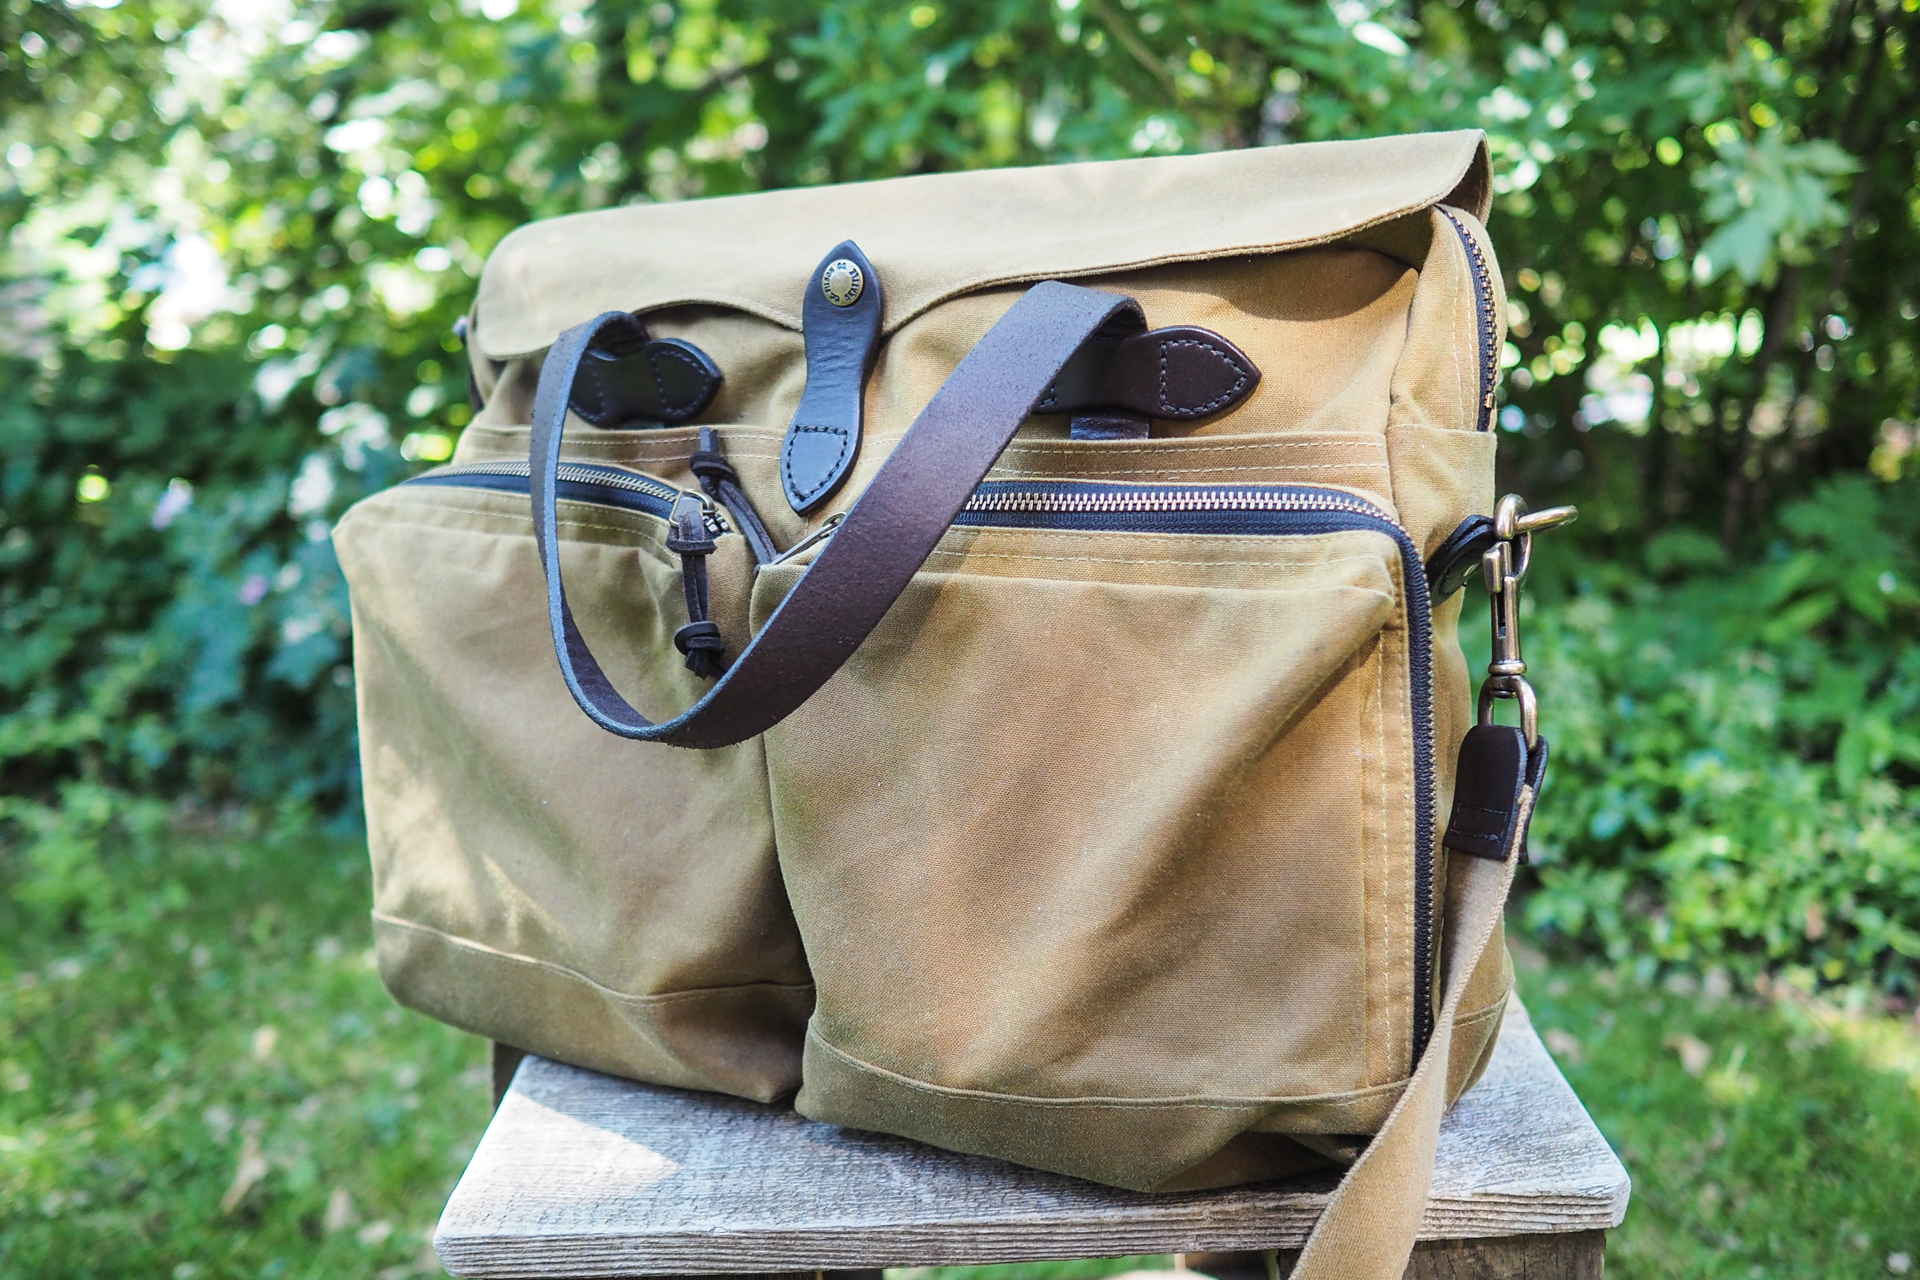 Review Waxed Canvas Bags From Filson Ona Crootore